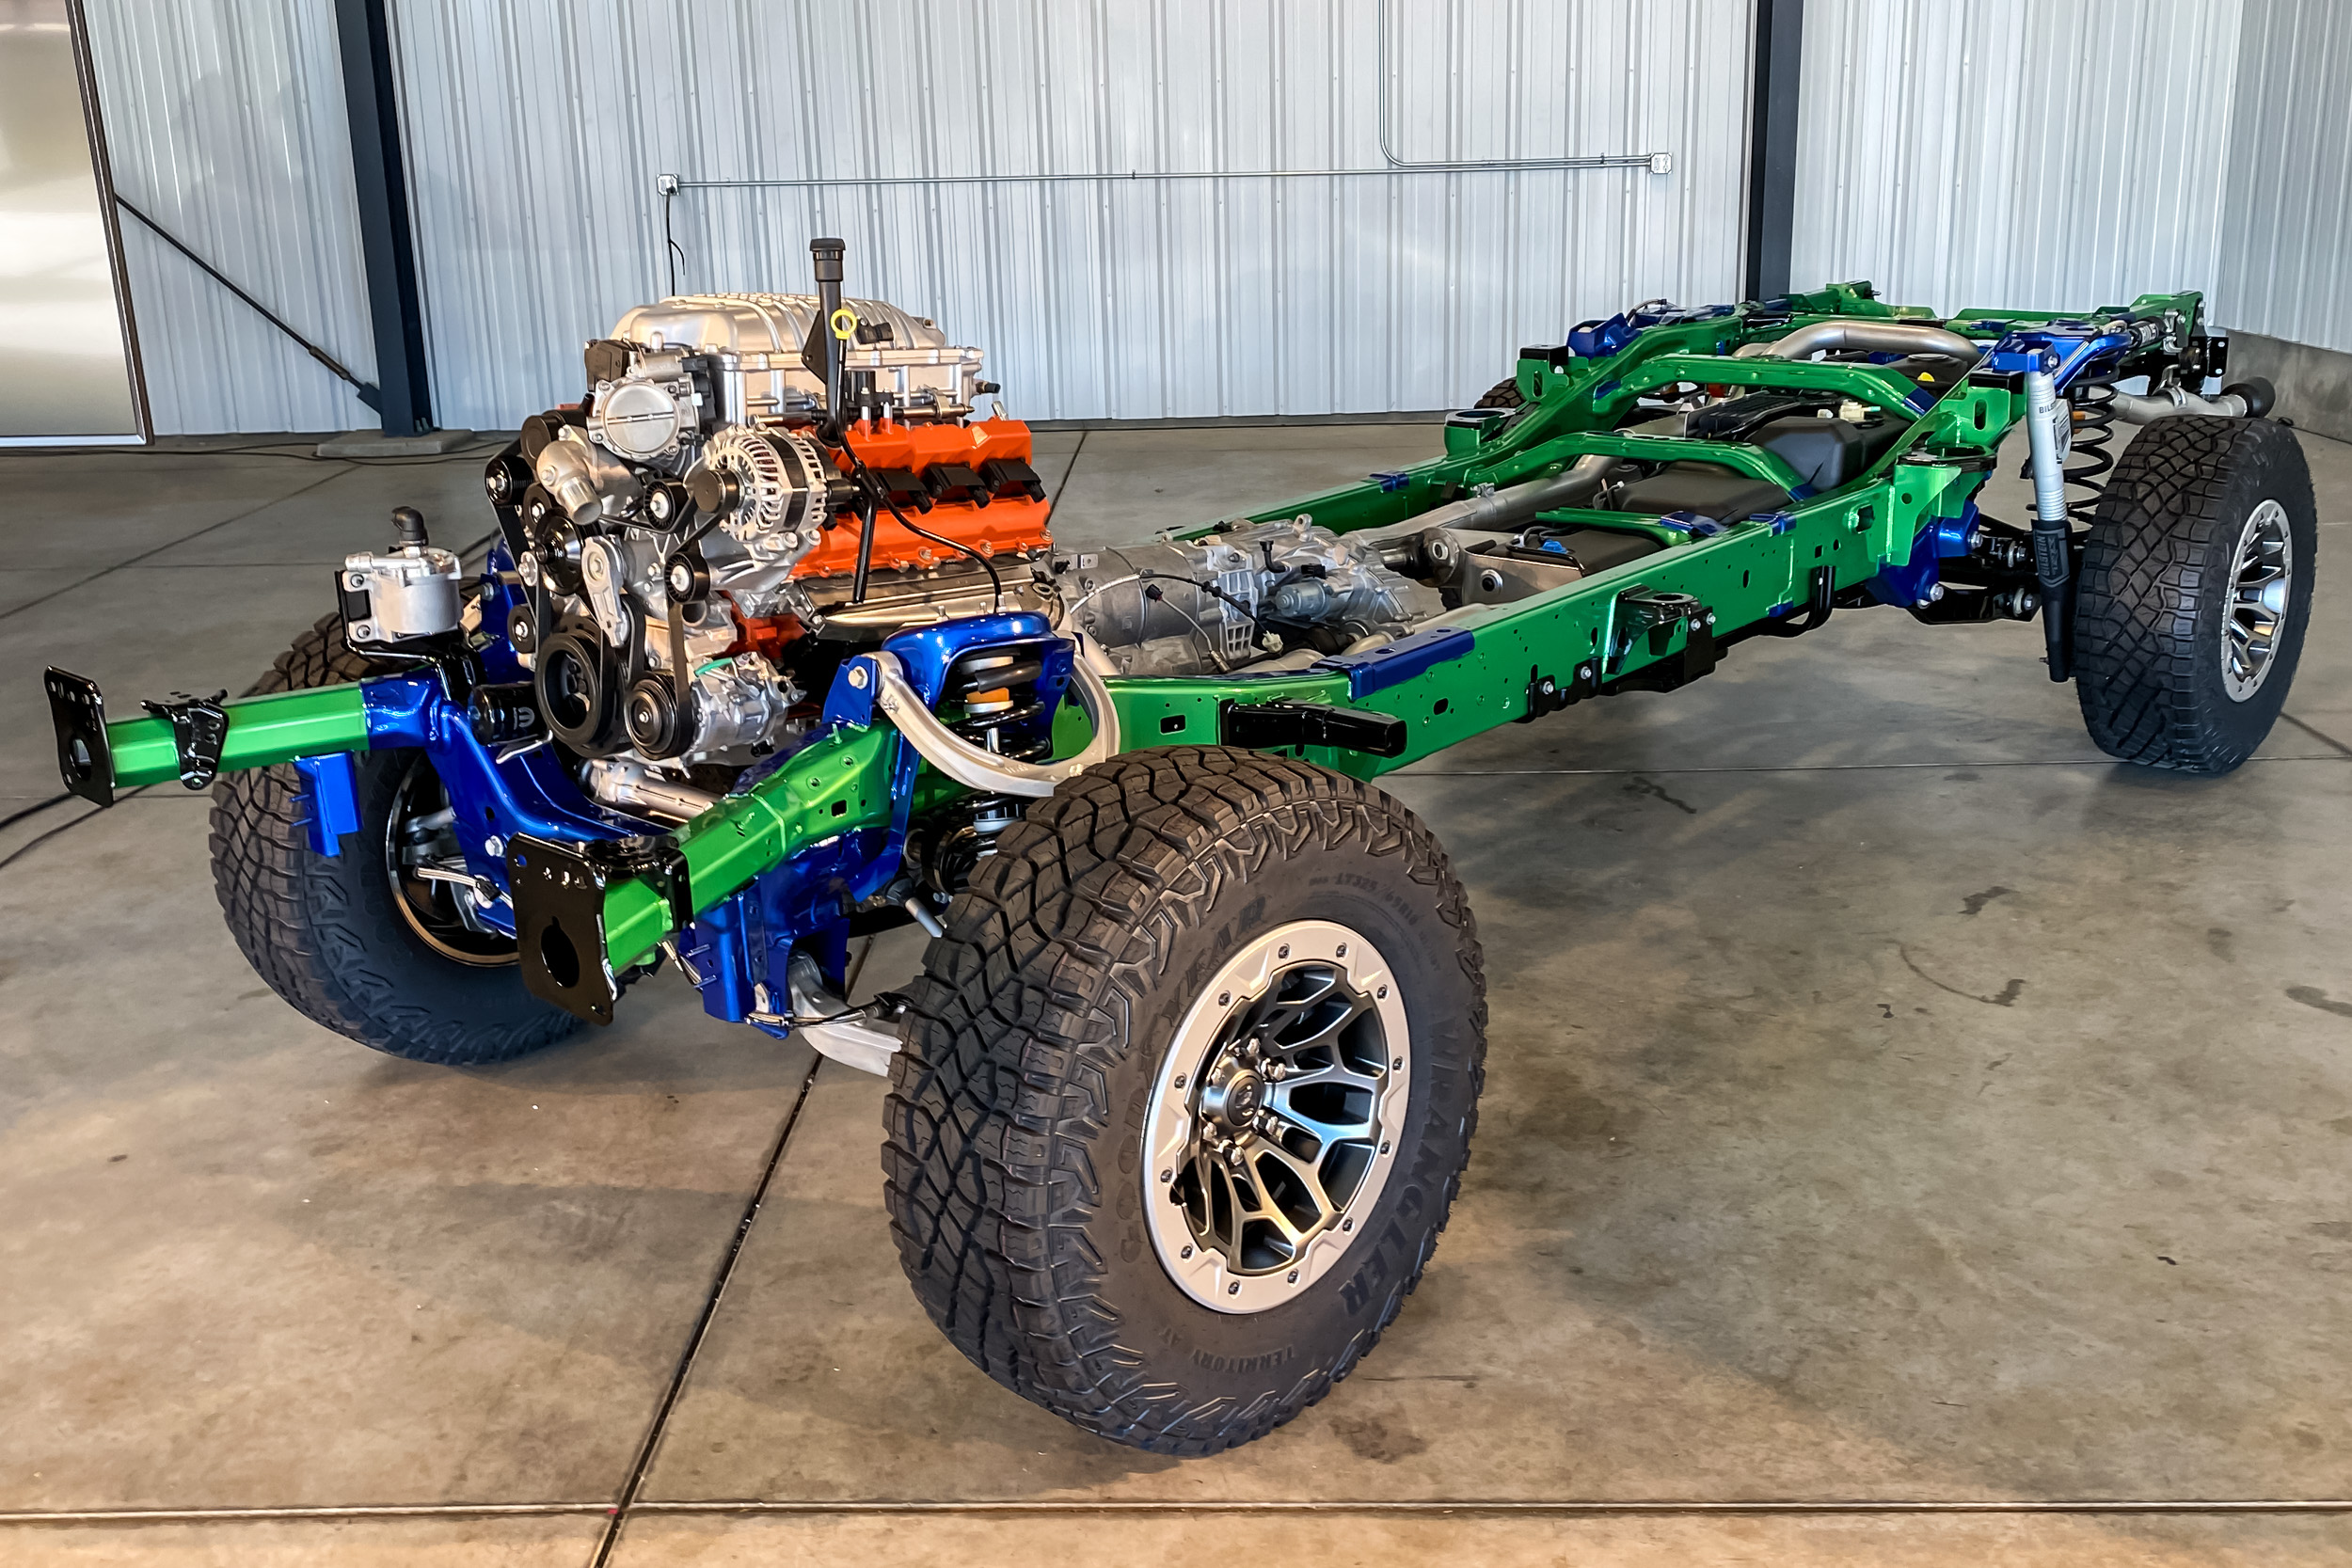 RAM TRX chassis